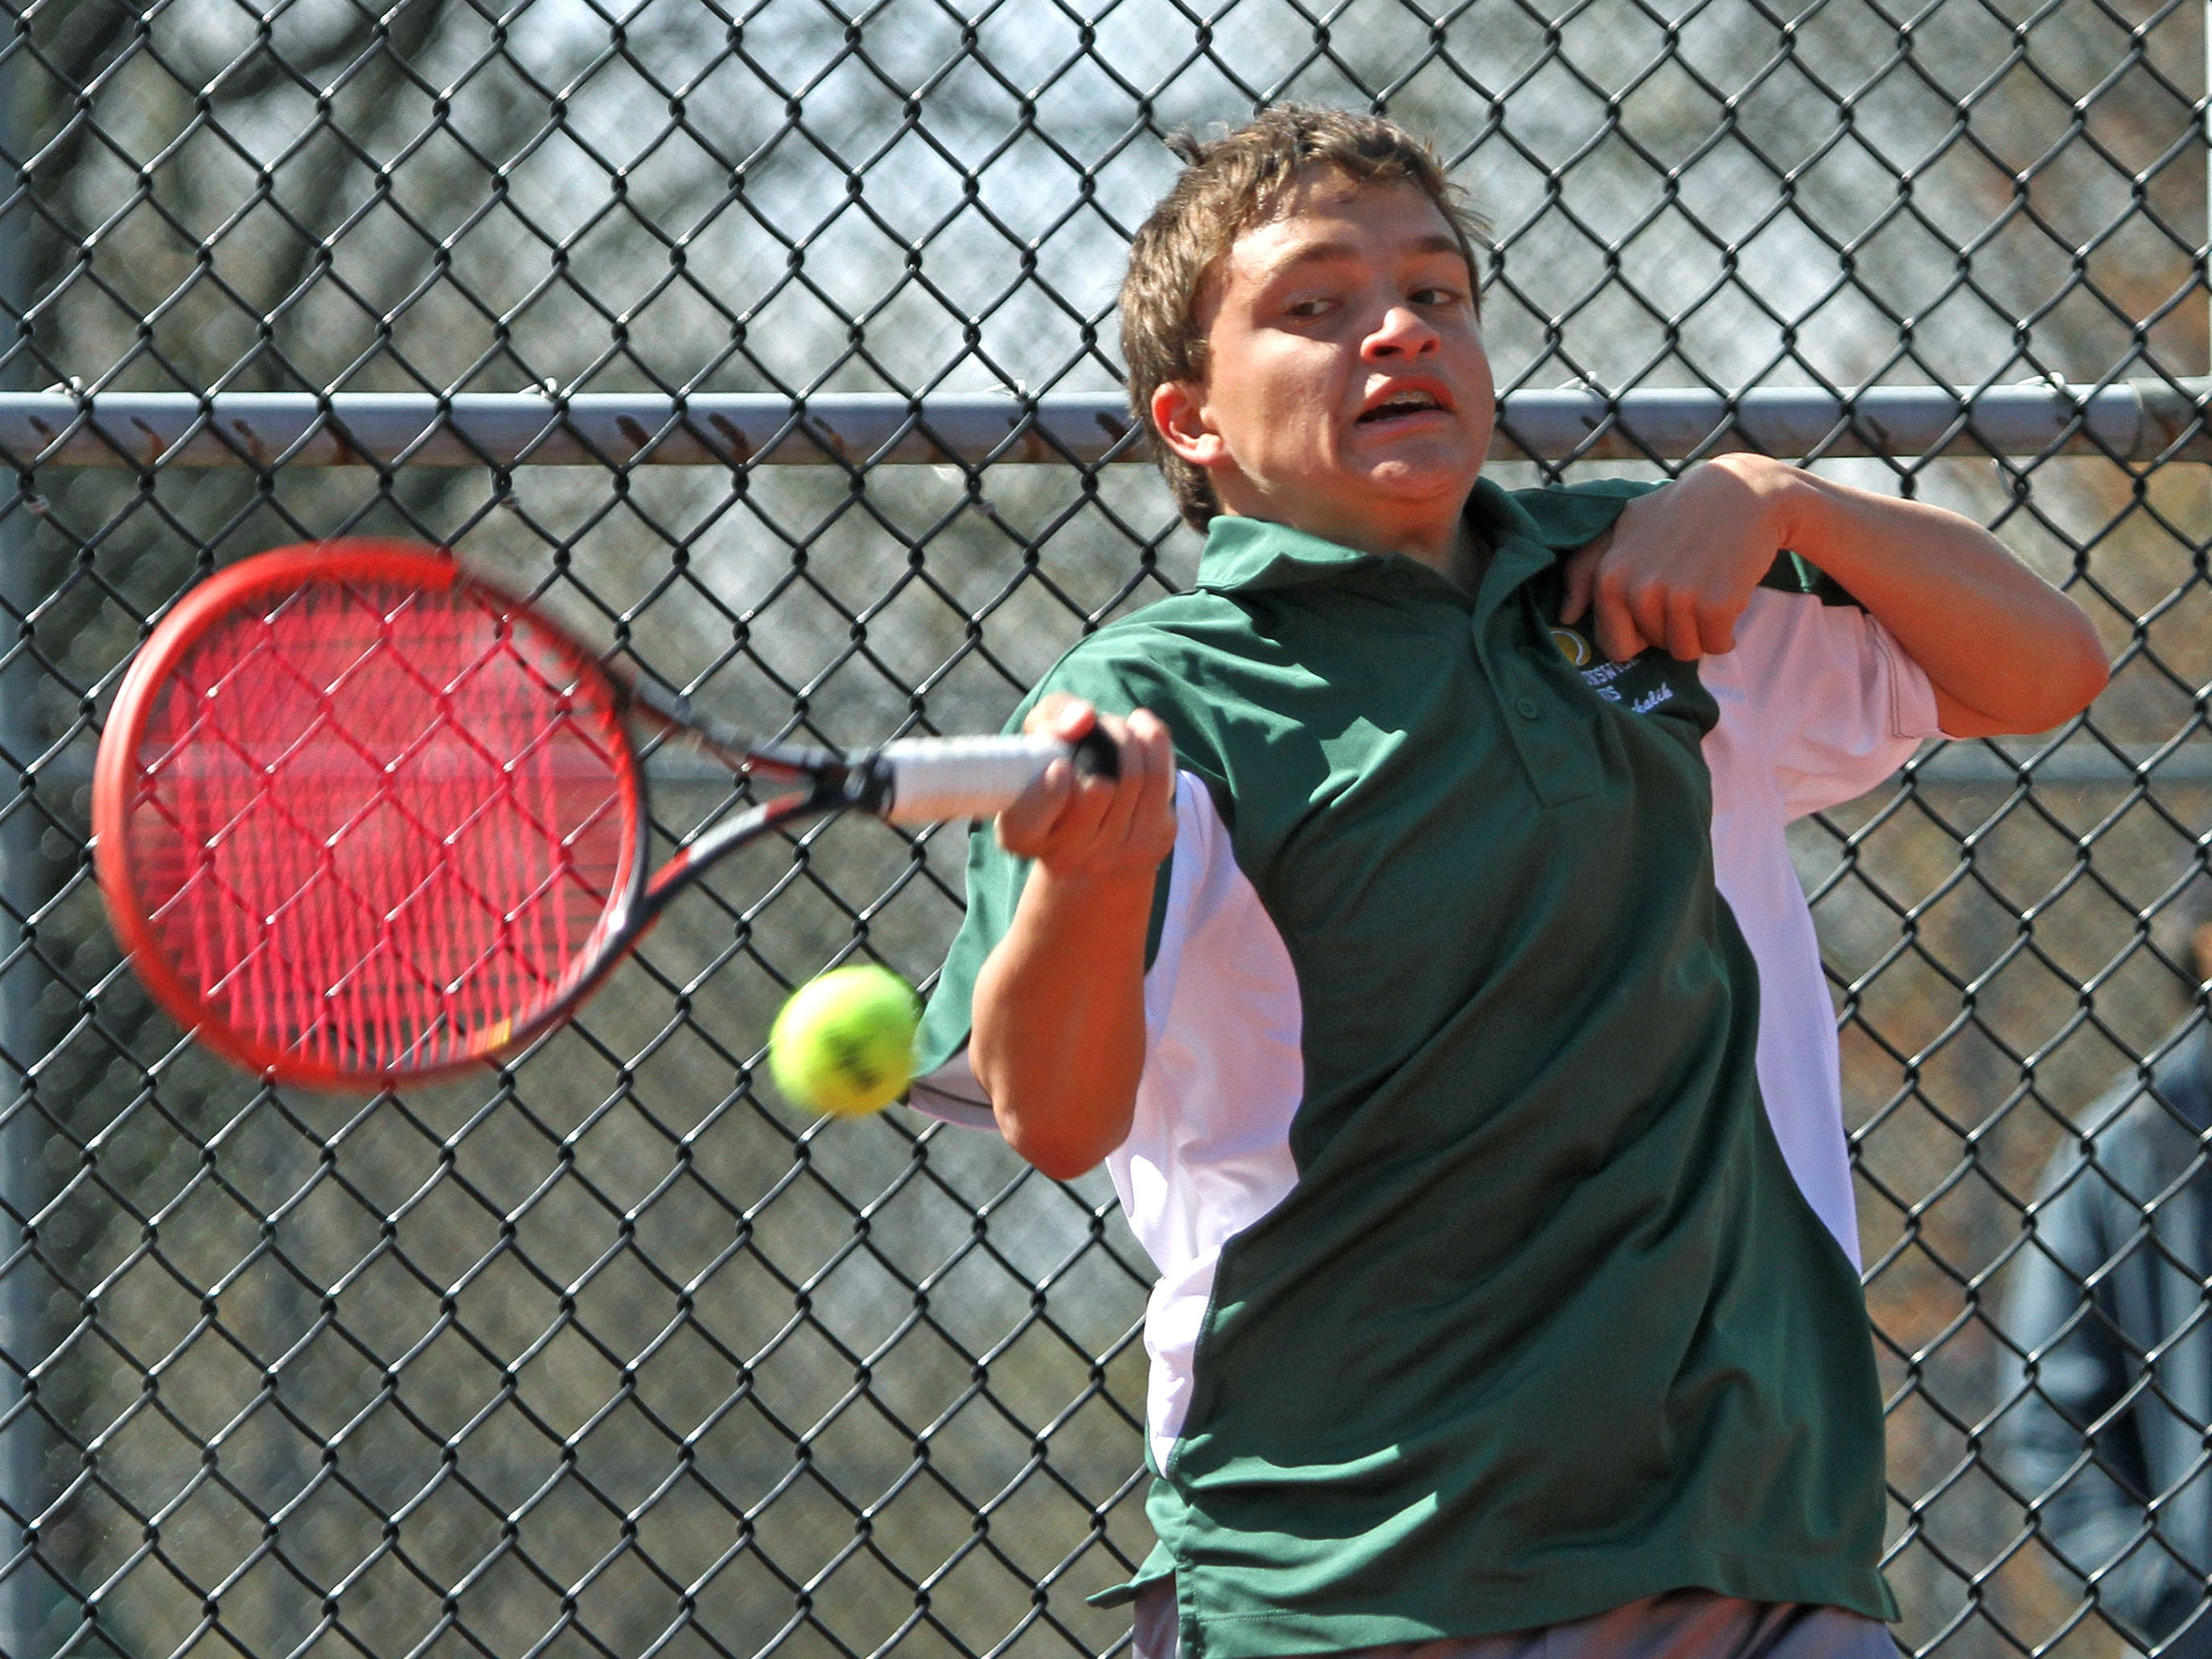 East Brunswick's Josh Marchalik competes in the First Singles match in the GMC tennis tournament finals at Thomas Edison Park in Edison.